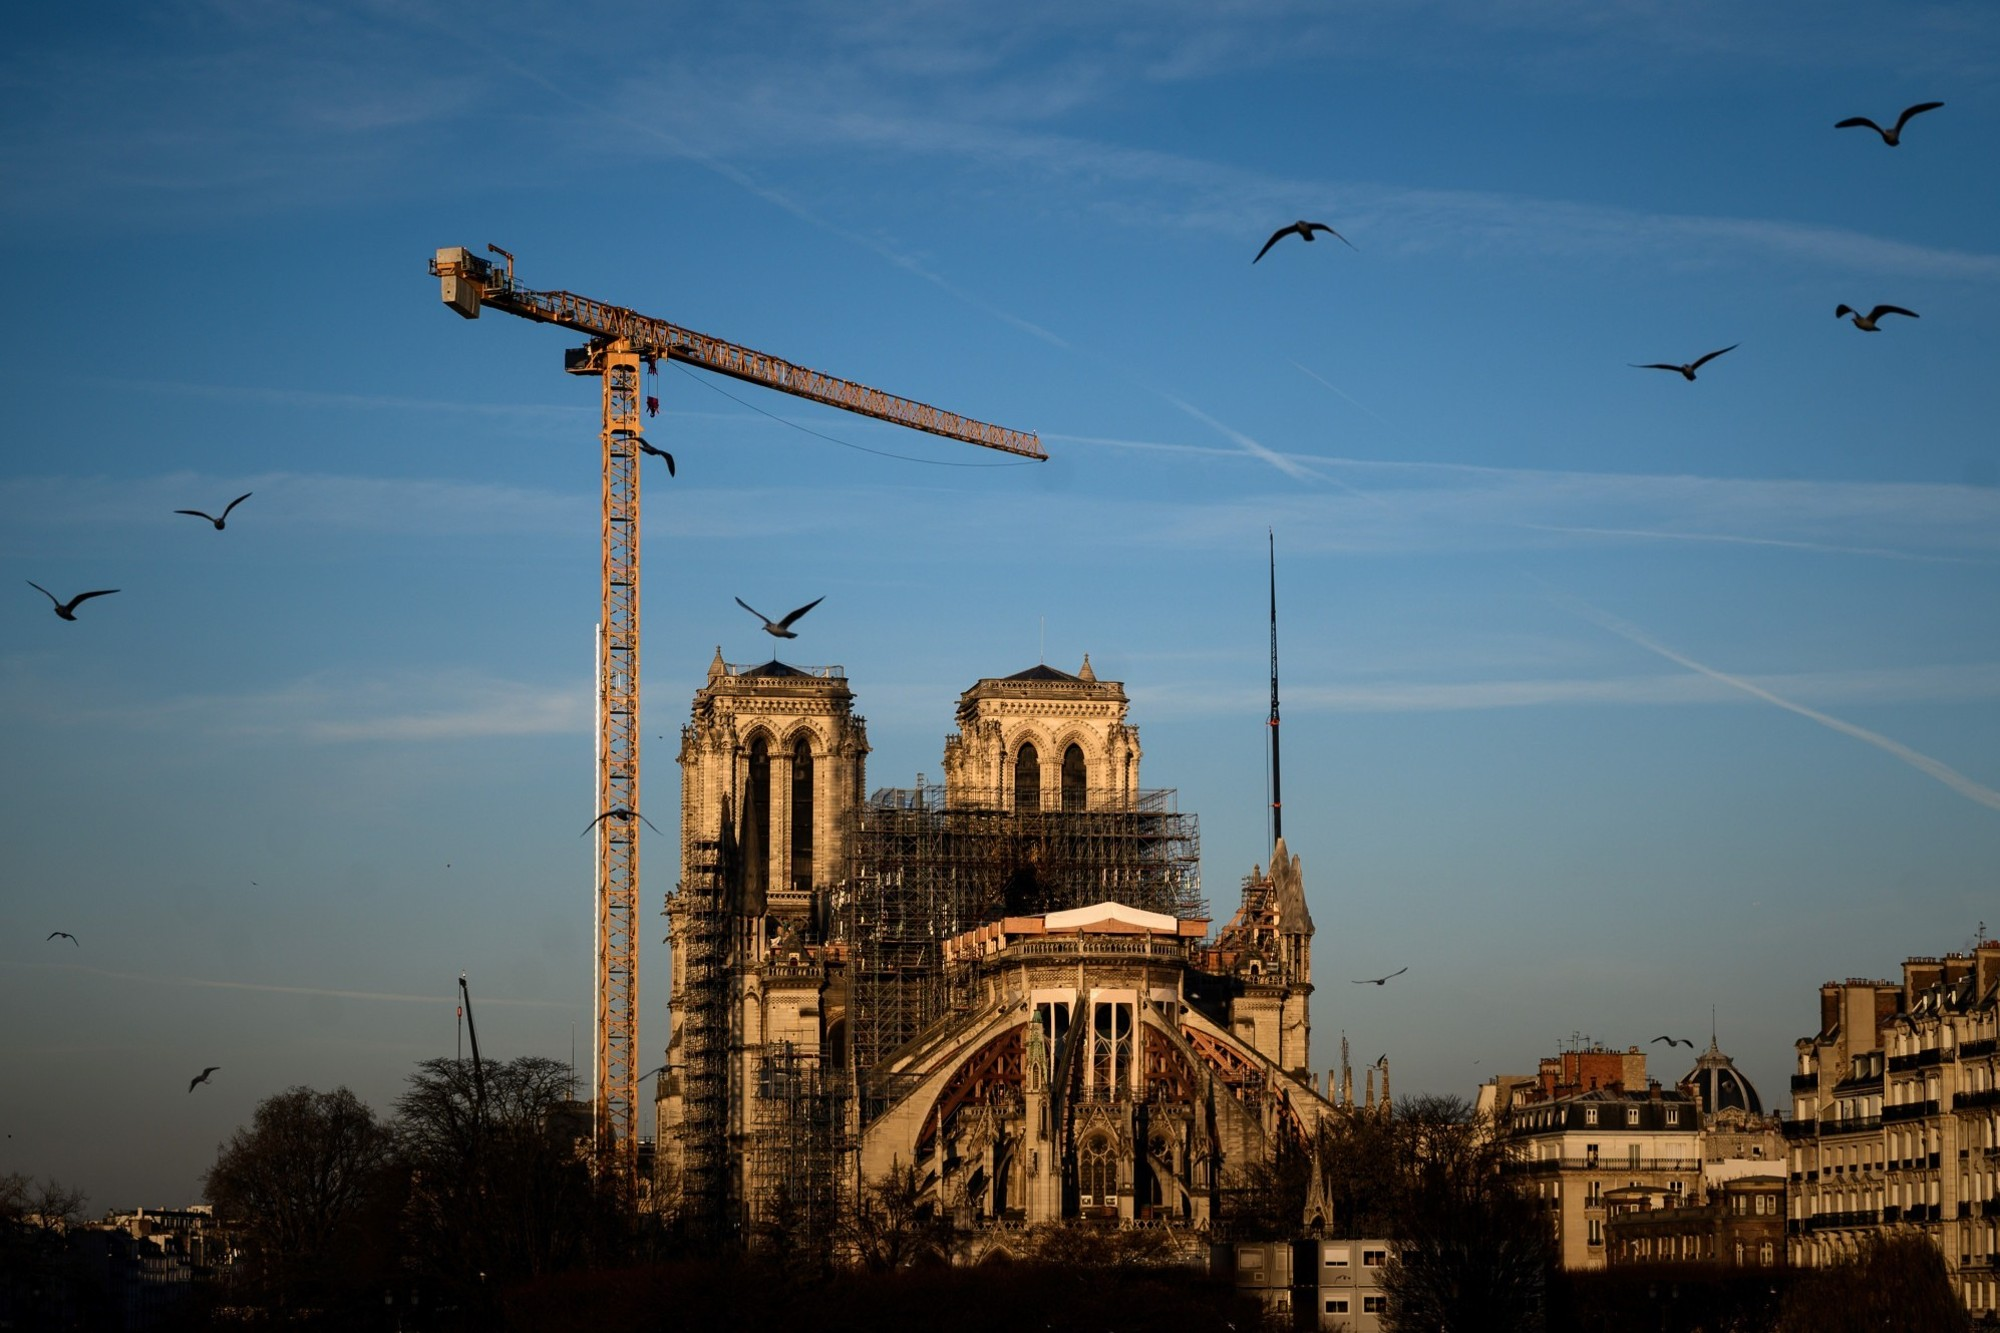 Notre-Dame de Paris : find out all about his visit in virtual reality